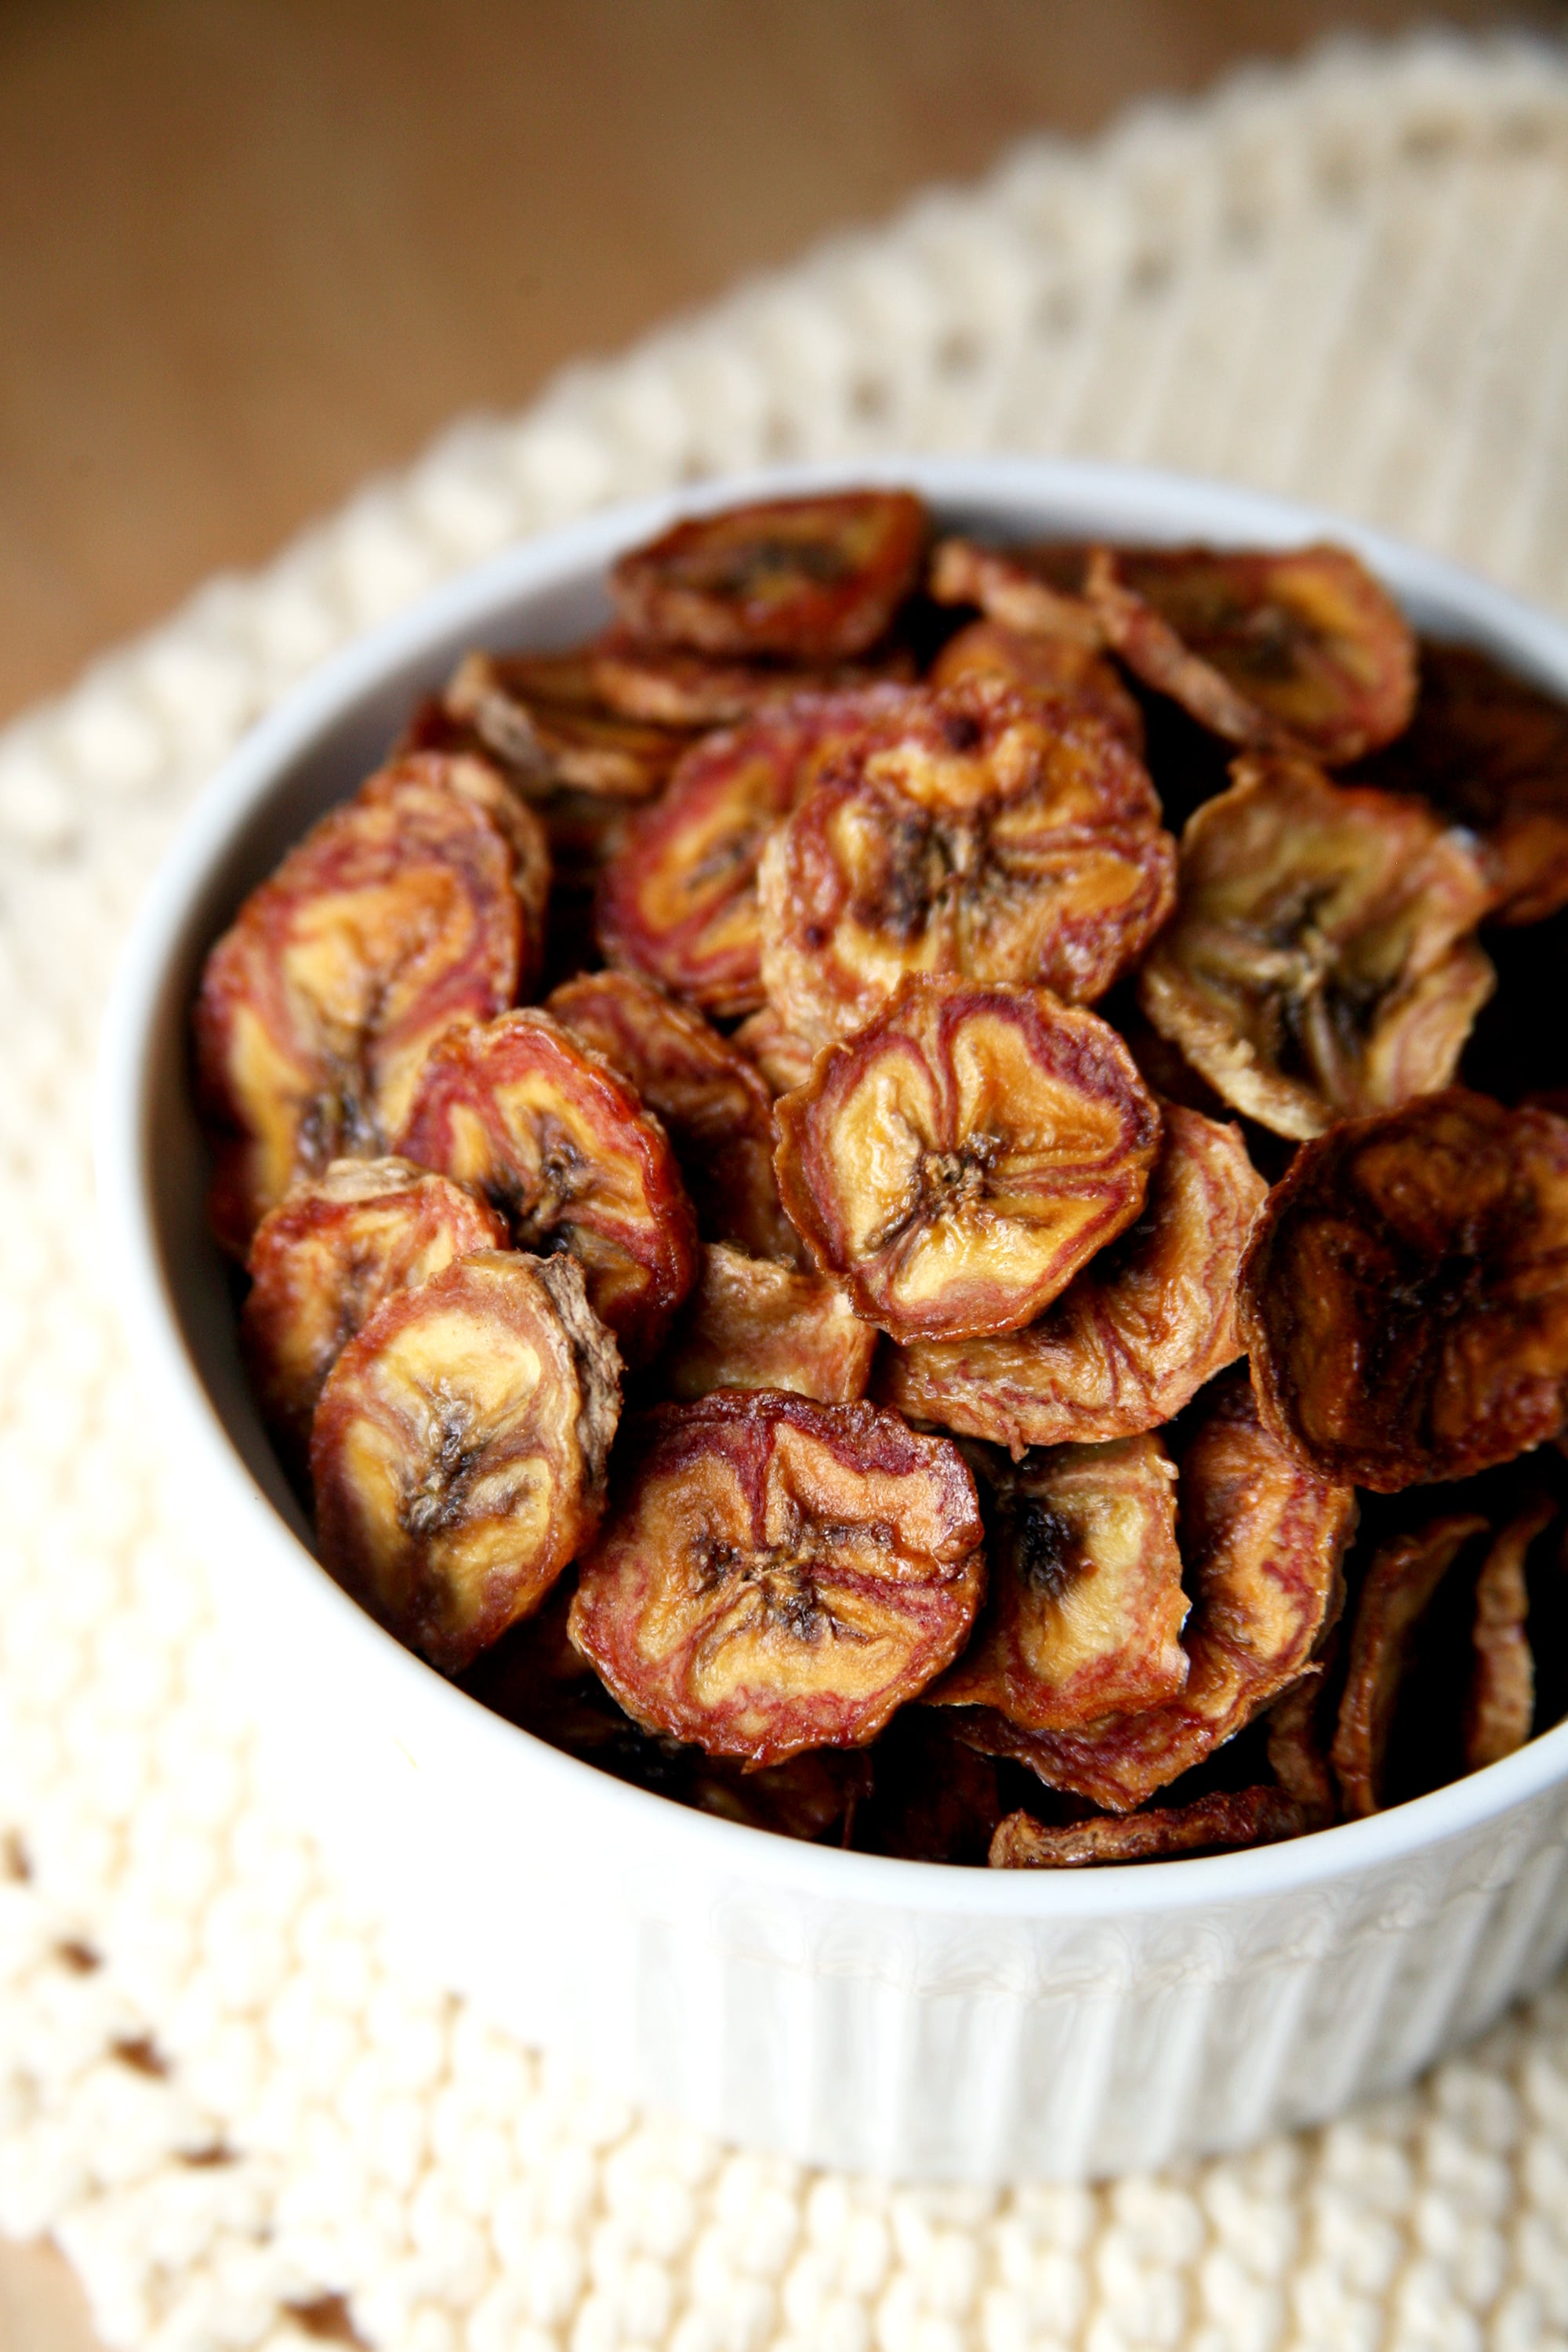 Baked Cinnamon Banana Chips